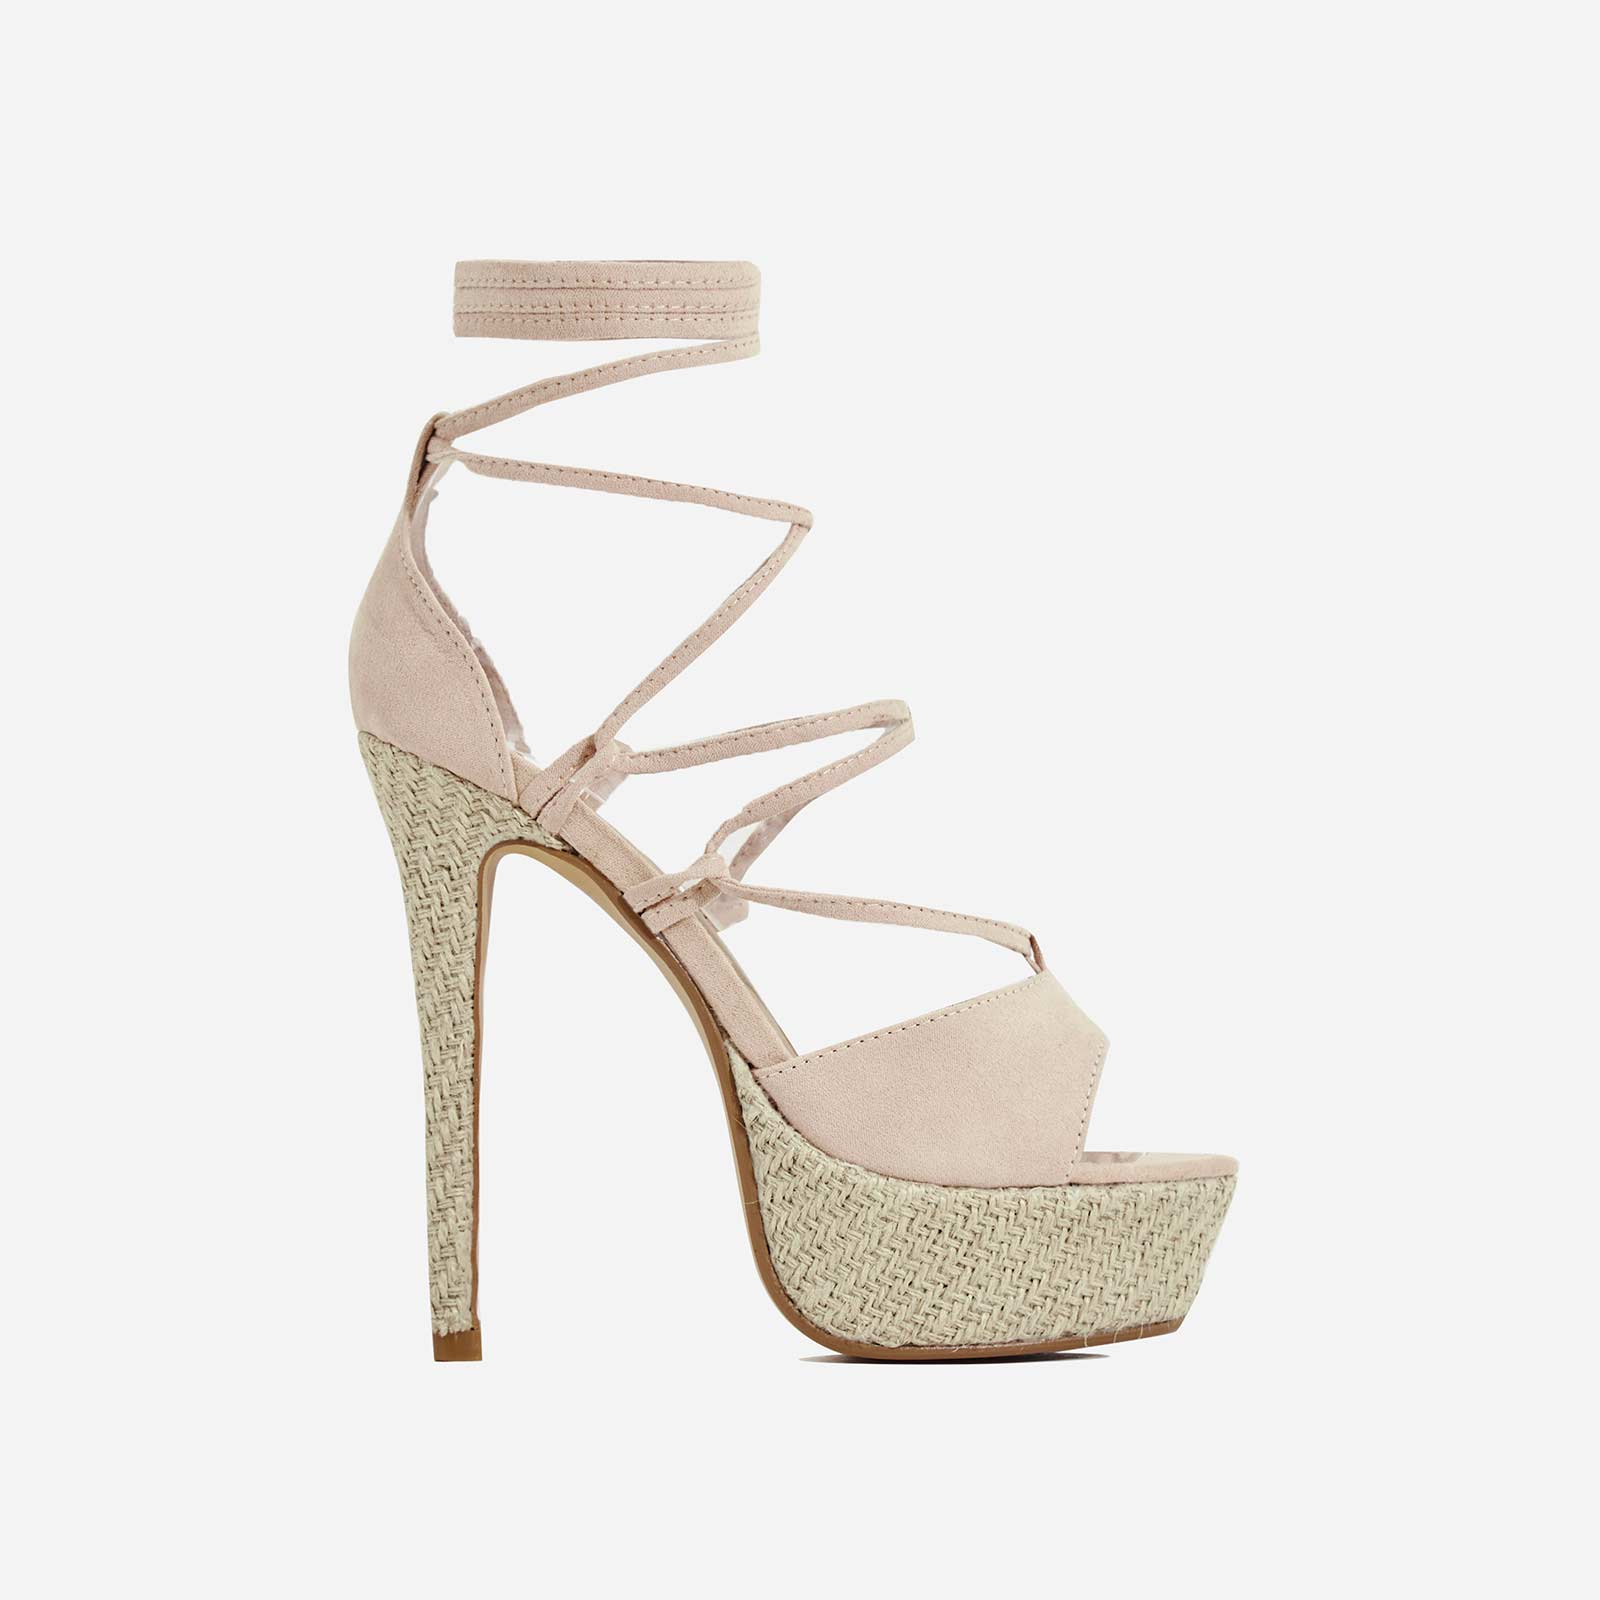 Coconut Espadrille Lace Up Platform Heel In Nude Faux Suede